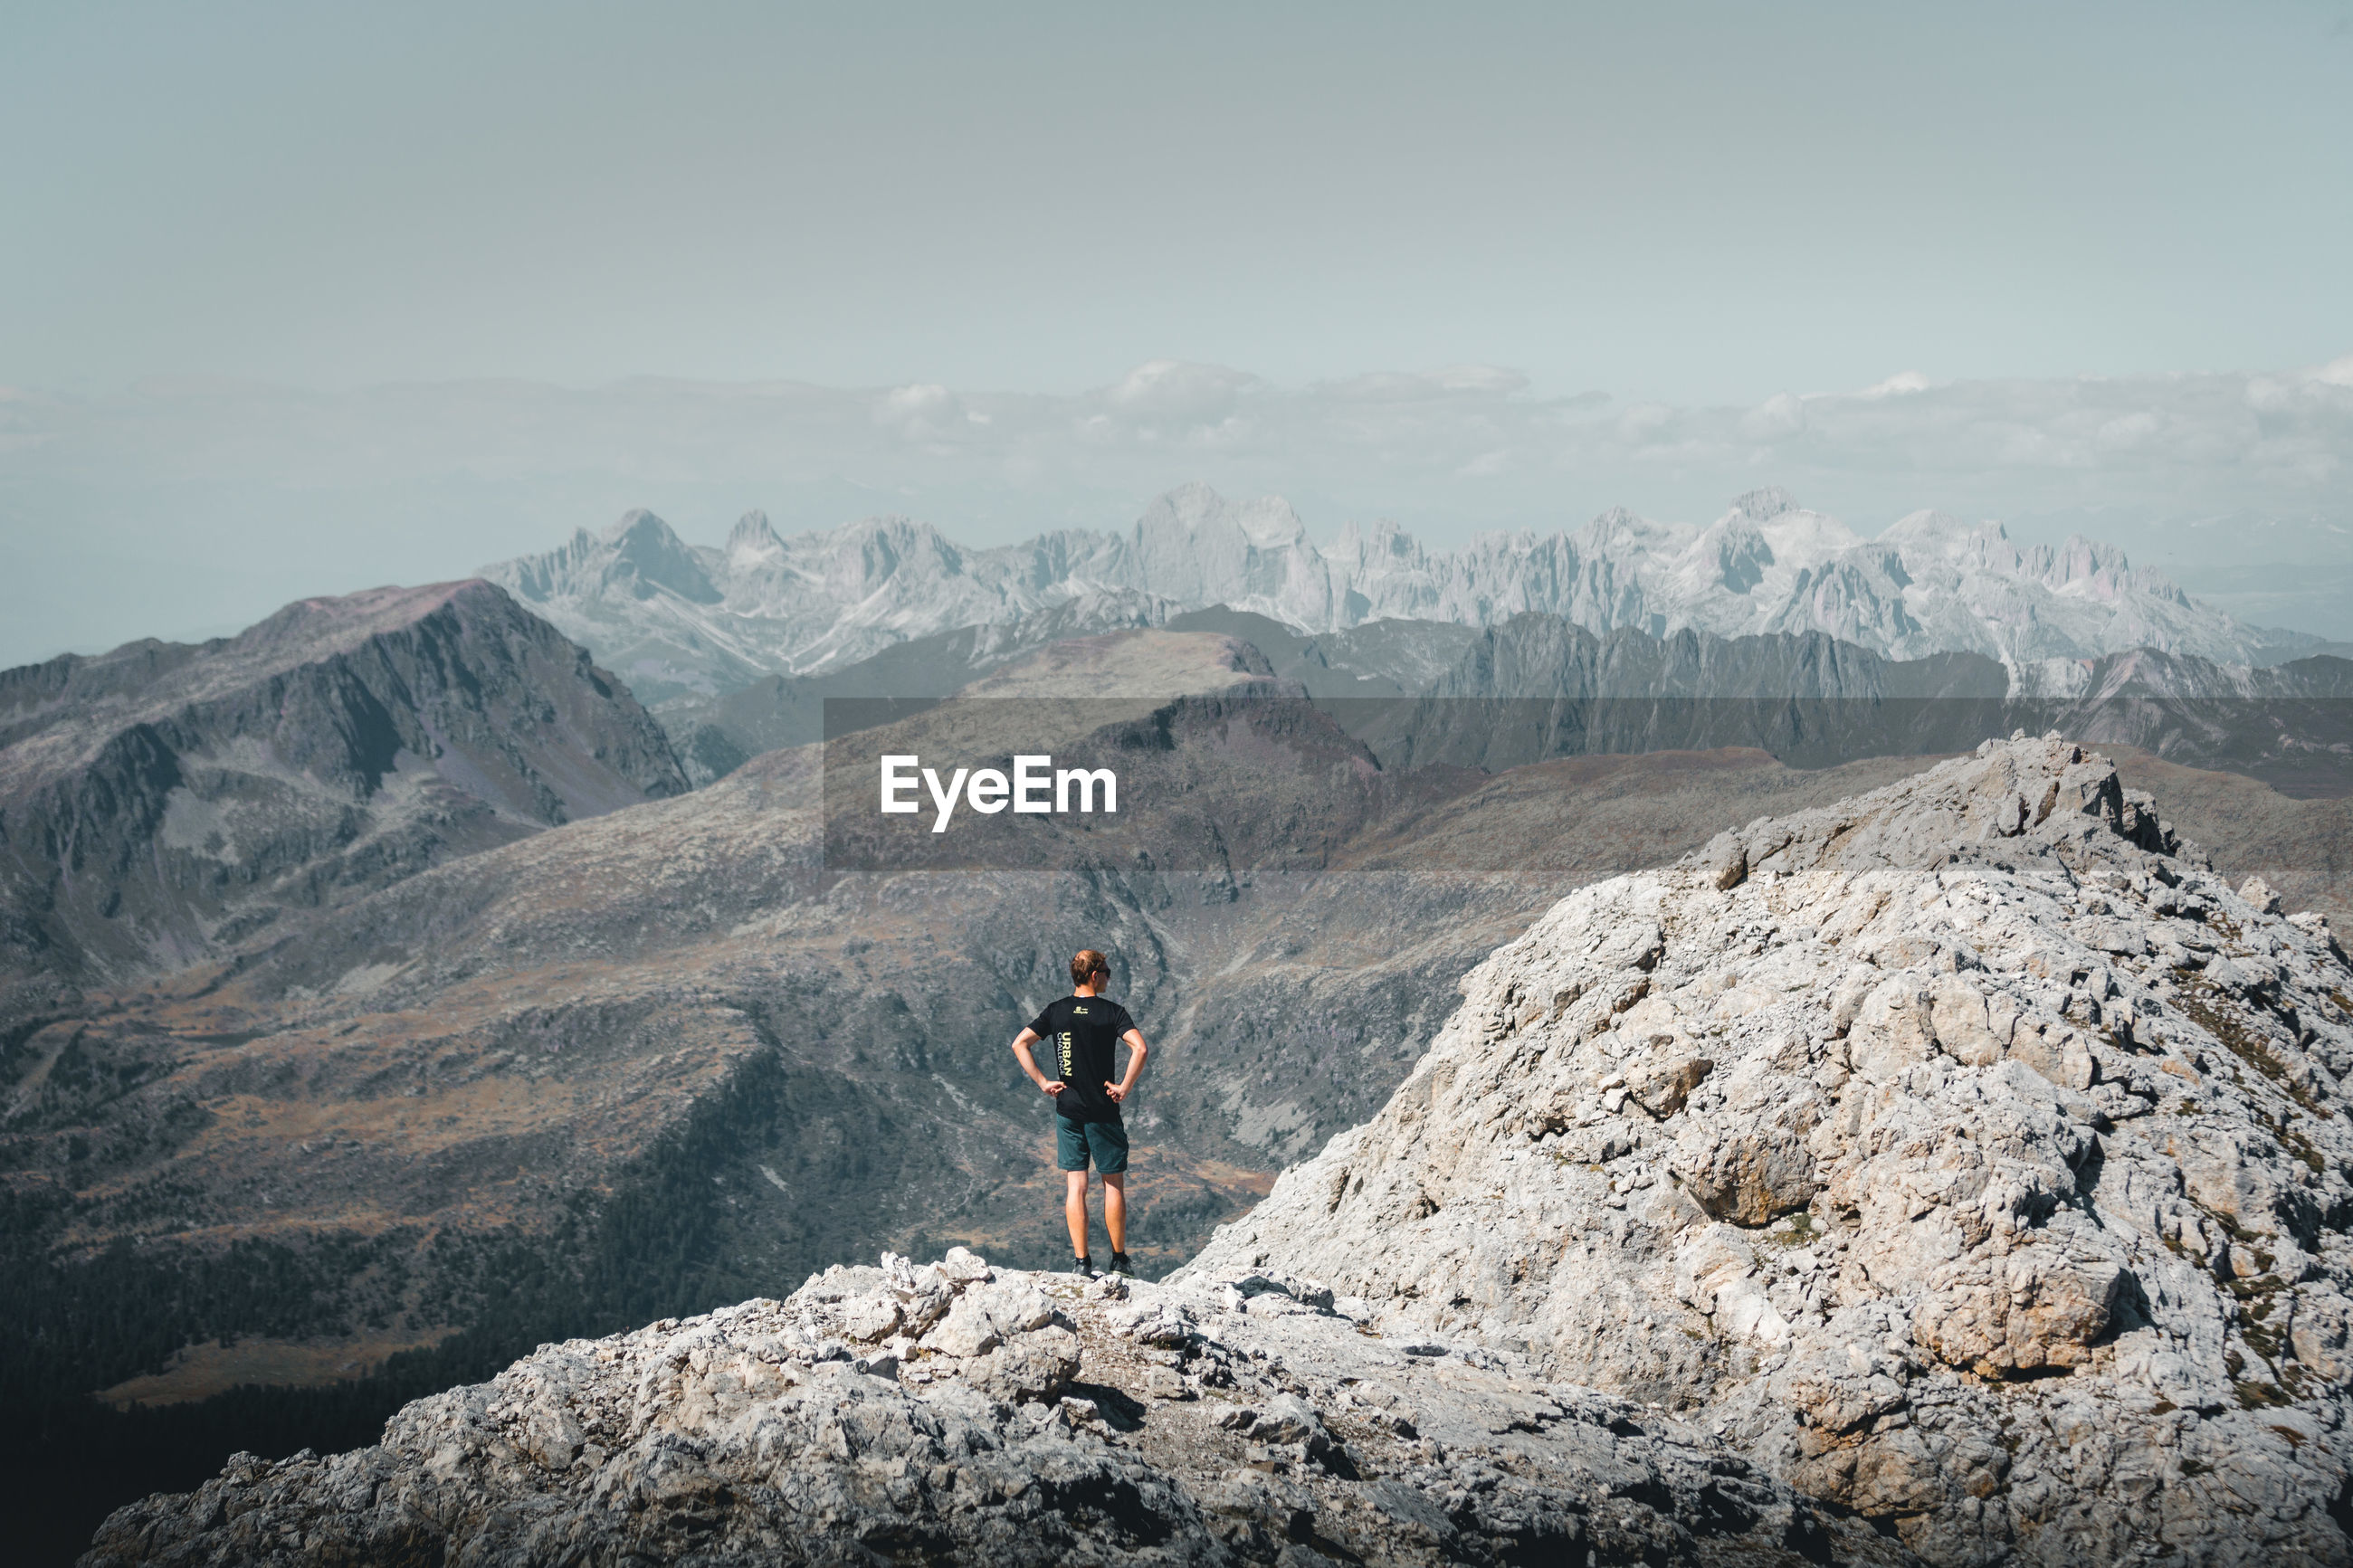 MAN STANDING ON ROCK LOOKING AT MOUNTAINS